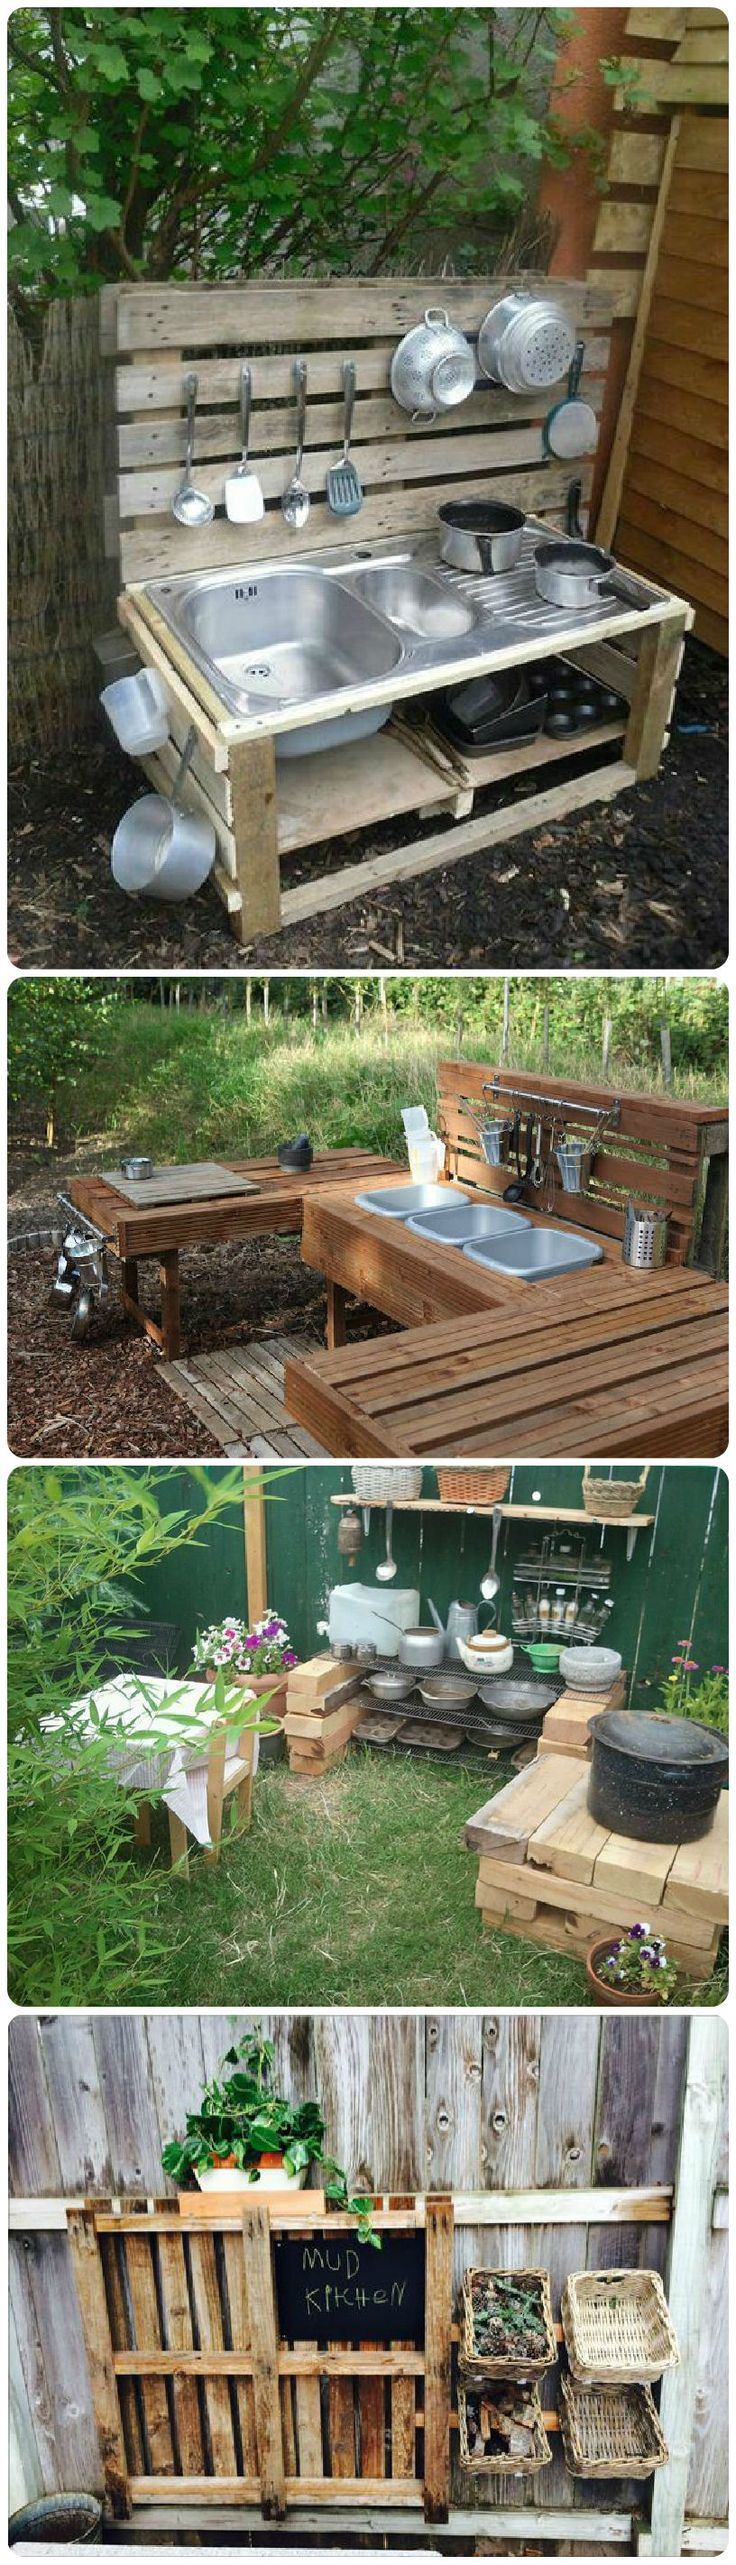 Best 25+ Outdoor Kitchens Ideas On Pinterest | Backyard Kitchen, Outdoor  Bar And Grill And Outdoor Kitchen Patio